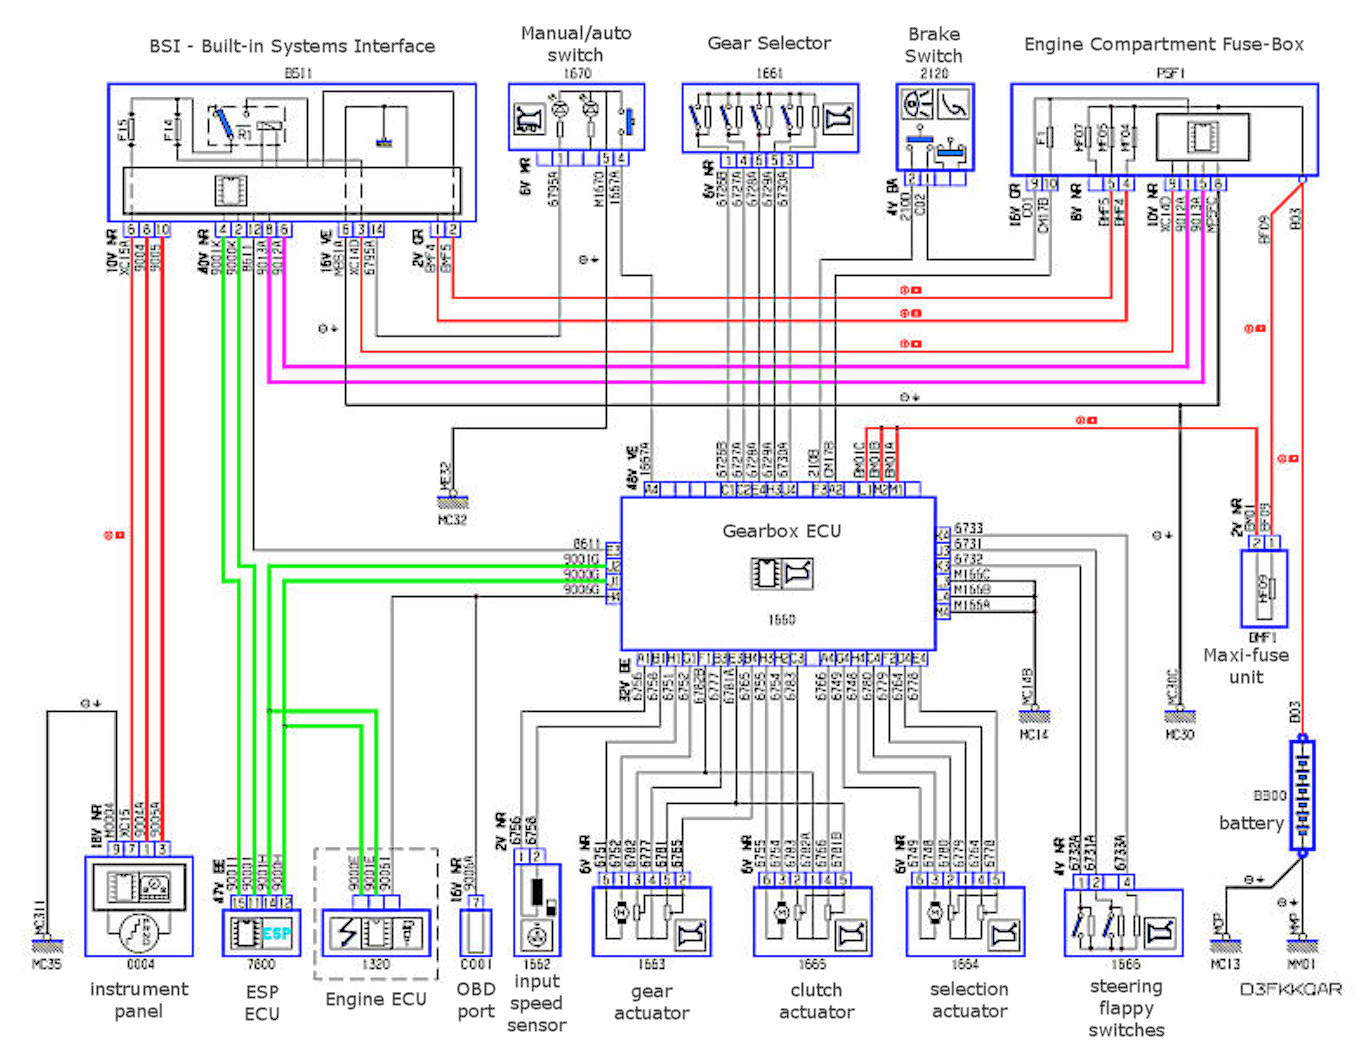 peugeot 307 fuse box diagram peugeot 1007 fuse box diagram